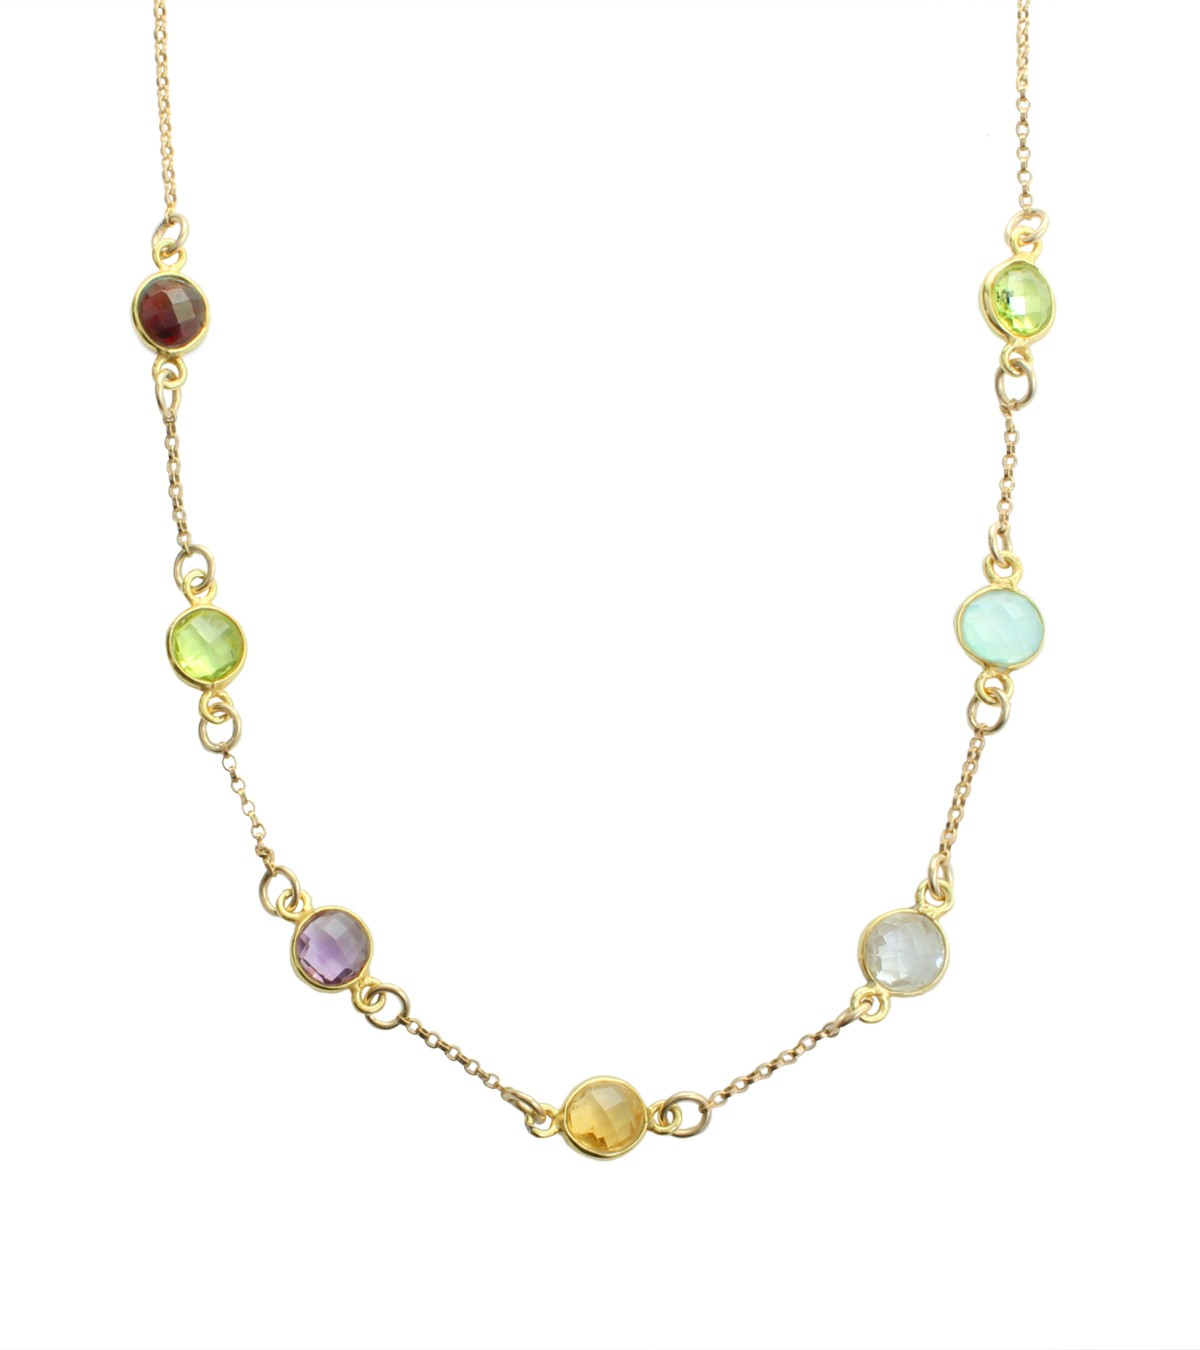 Mothers necklace with birthstones Pride and Joy